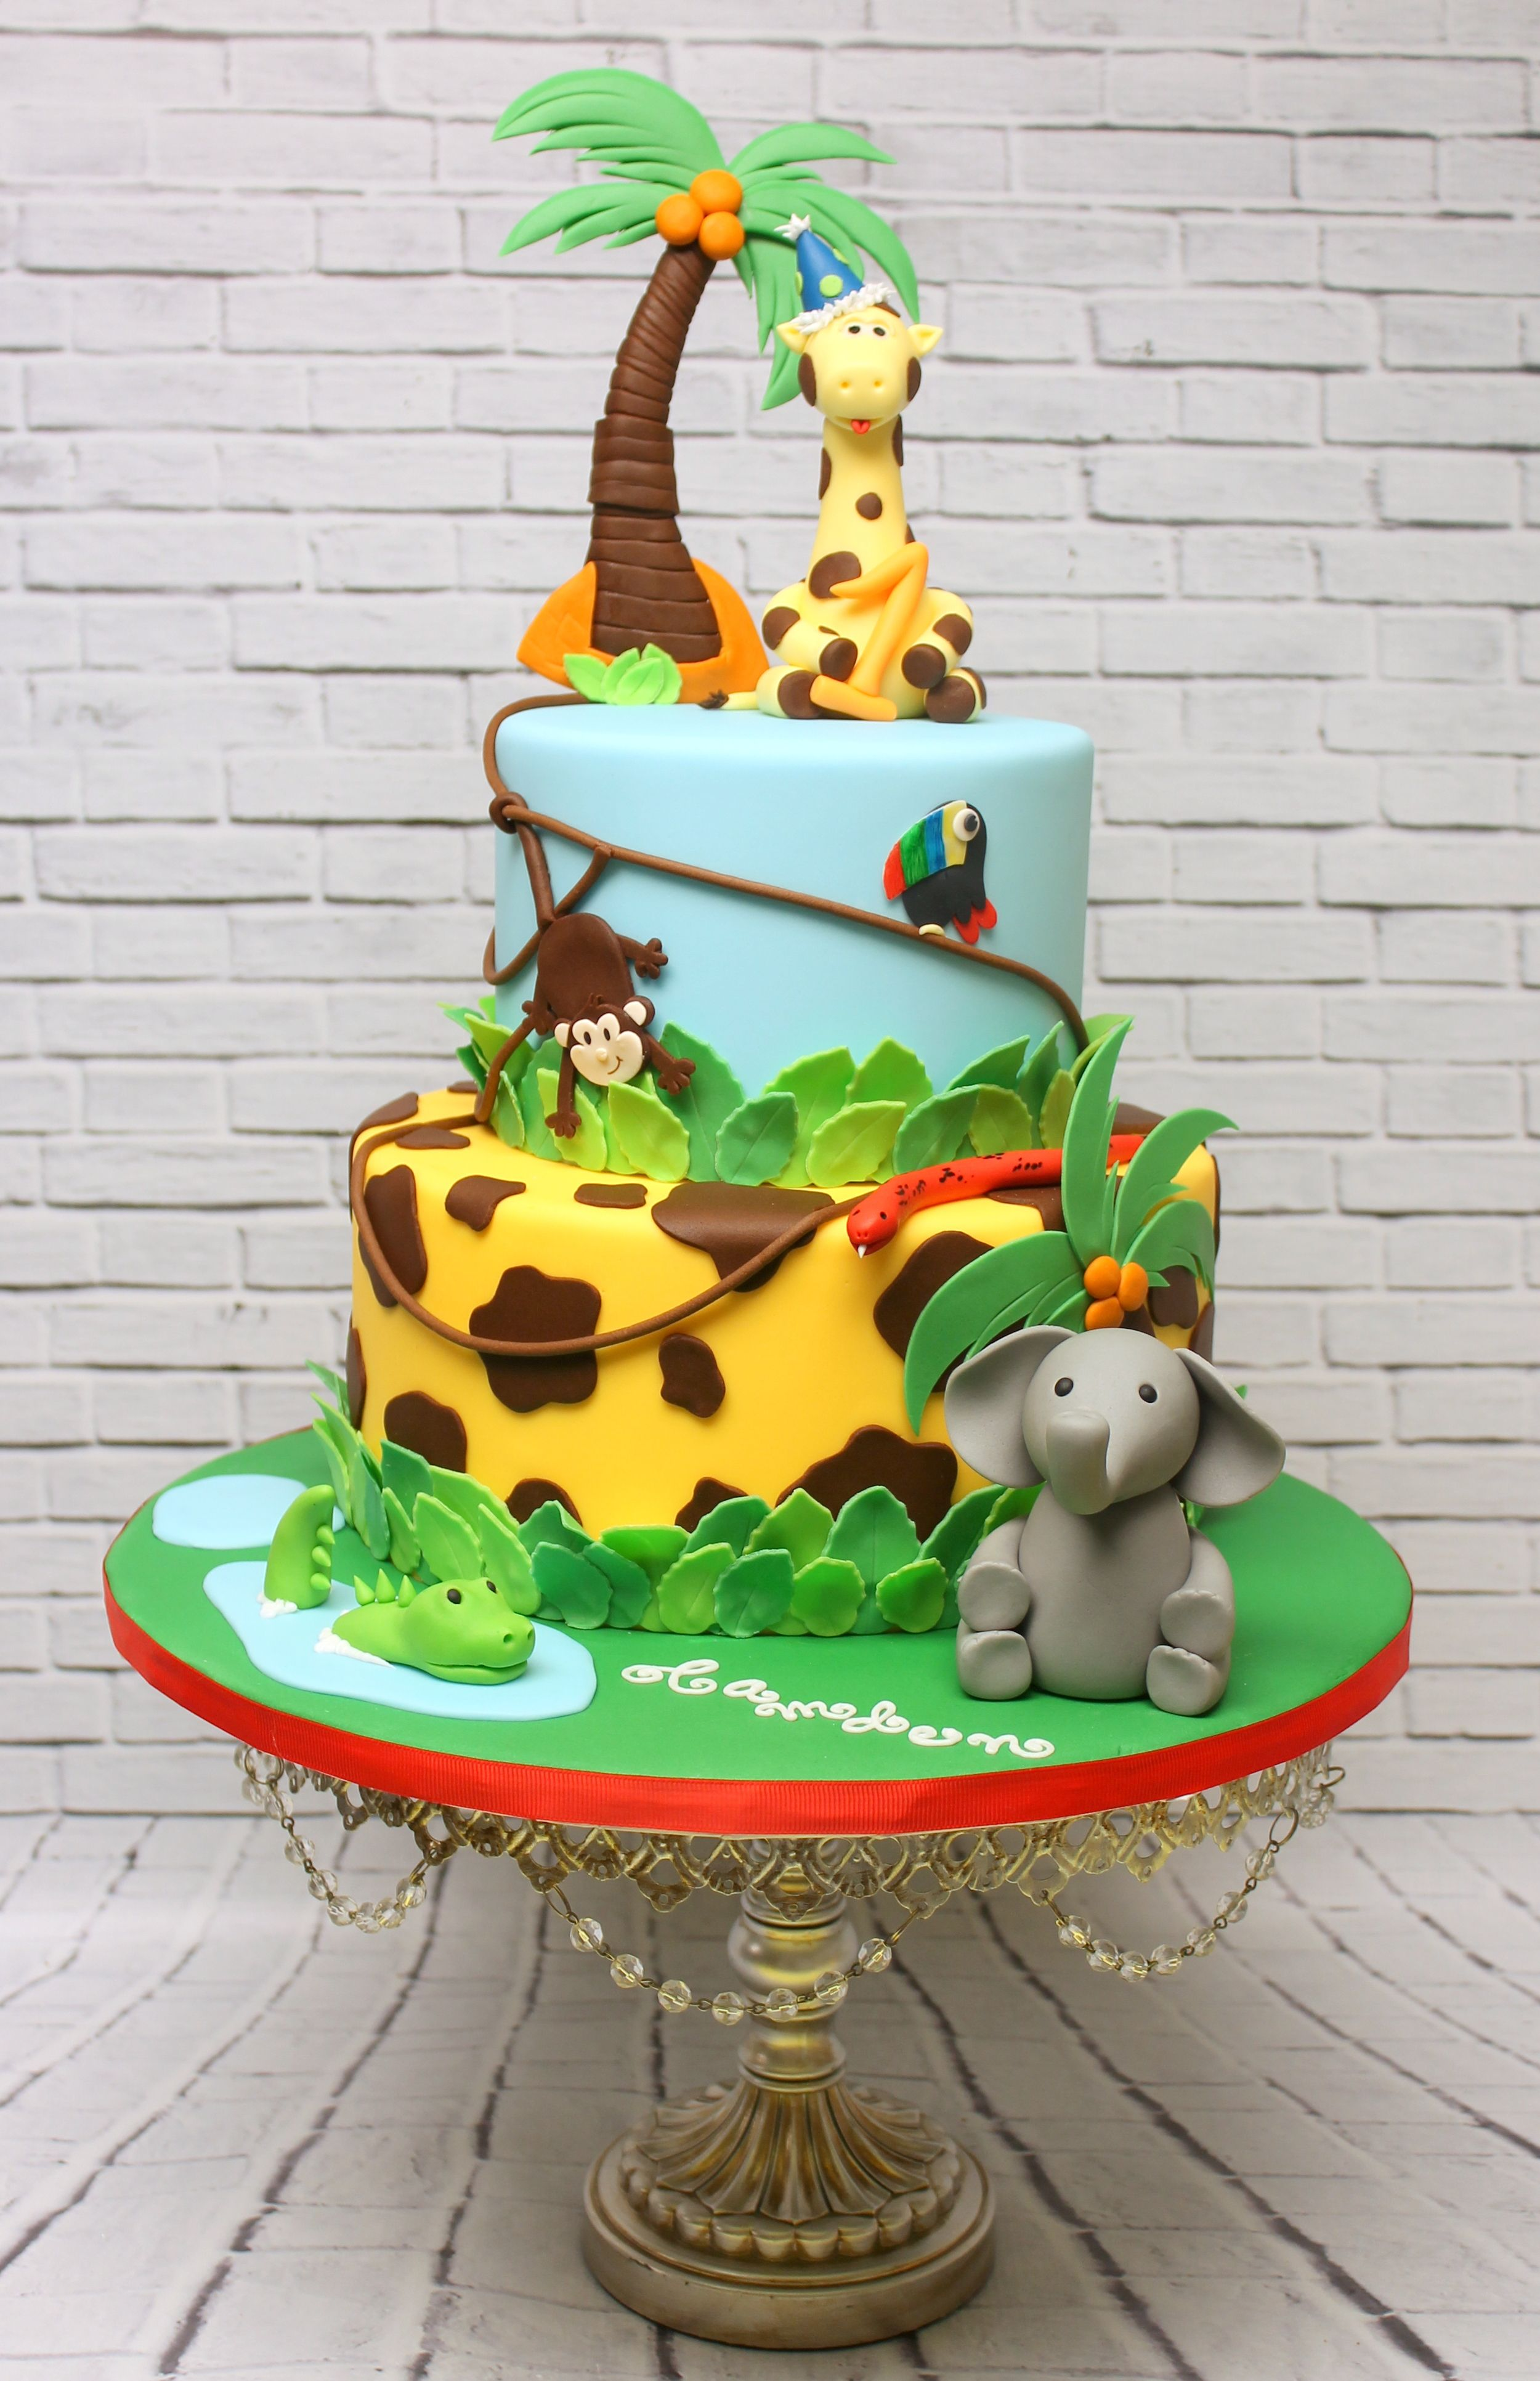 Fun Jungle Themed Birthday Cake Urbanicing Yesthisiscake